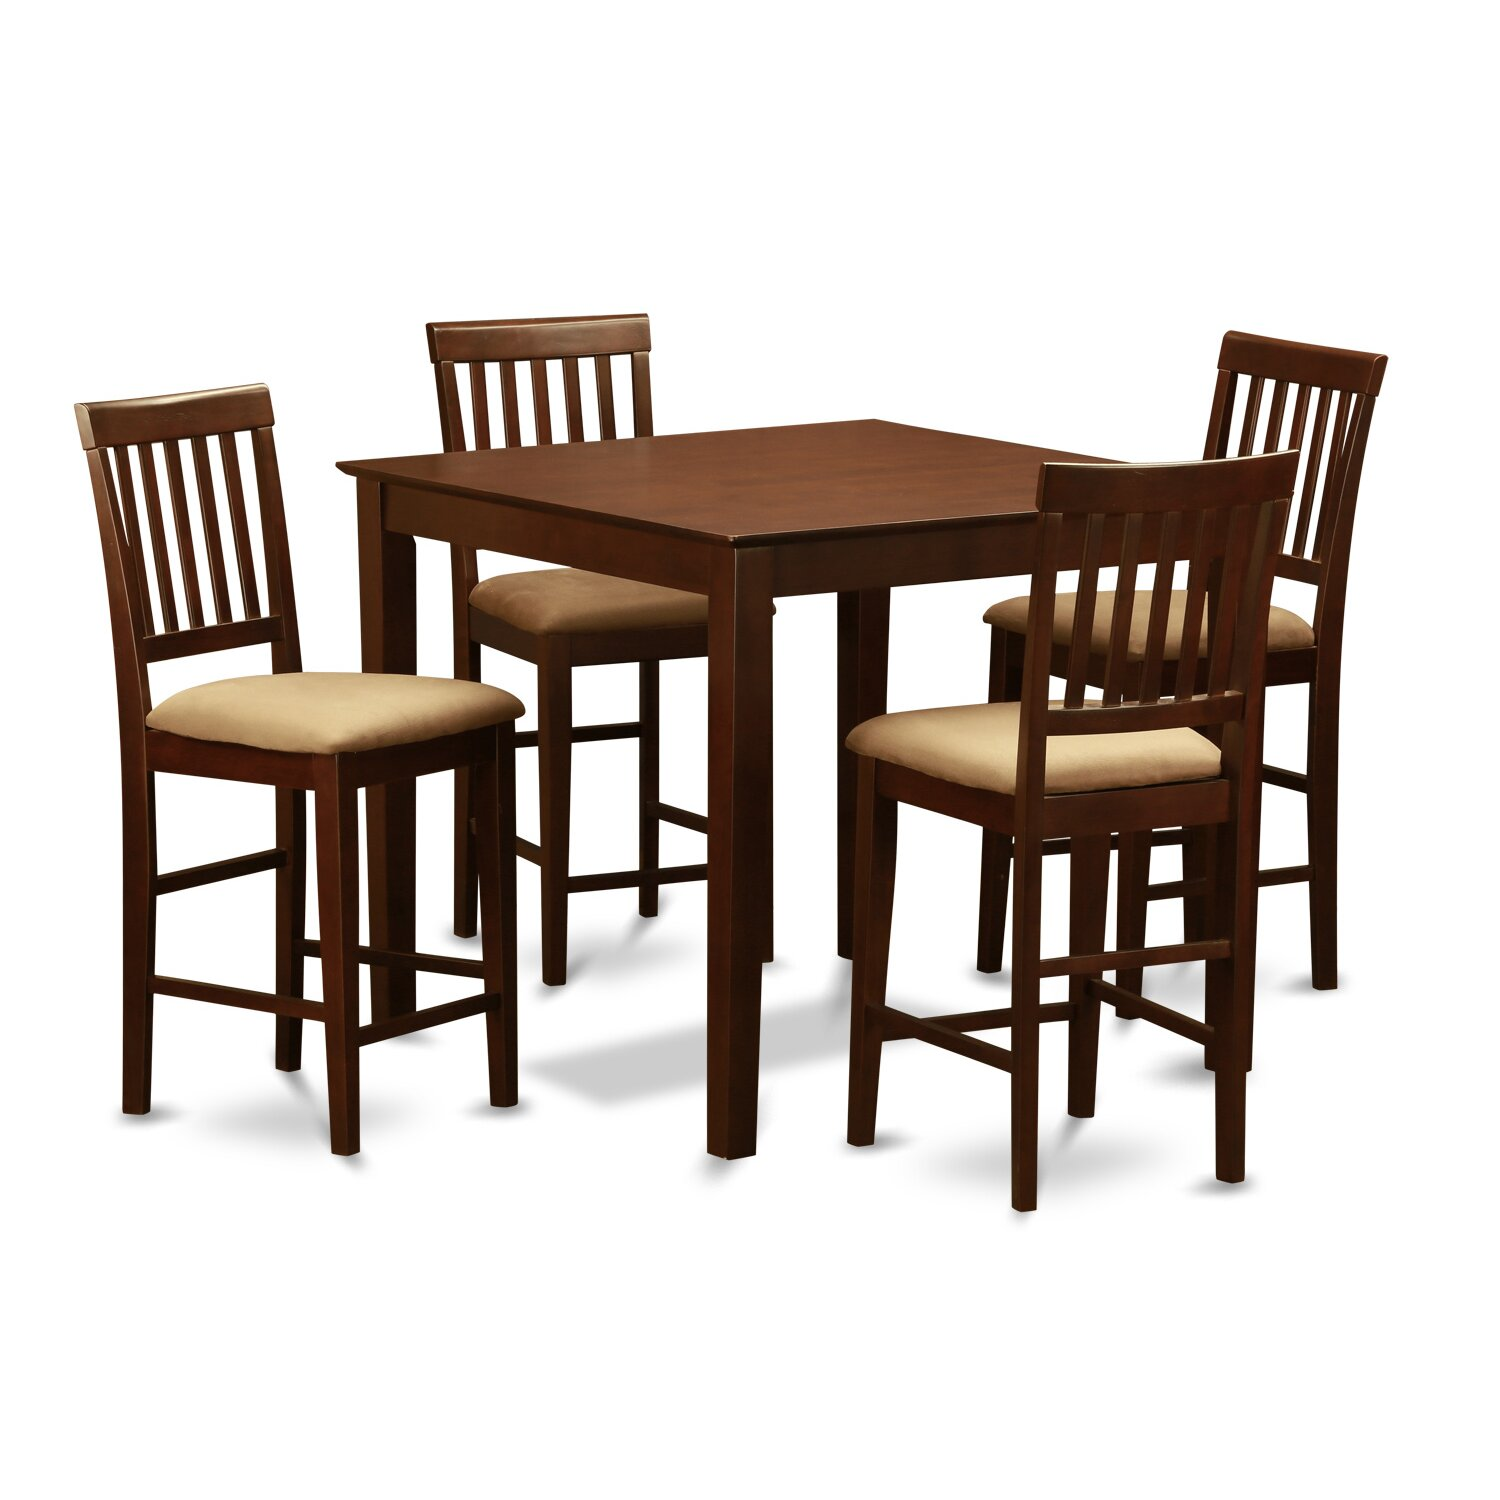 Wooden importers vernon 5 piece counter height dining set for Wooden dining set